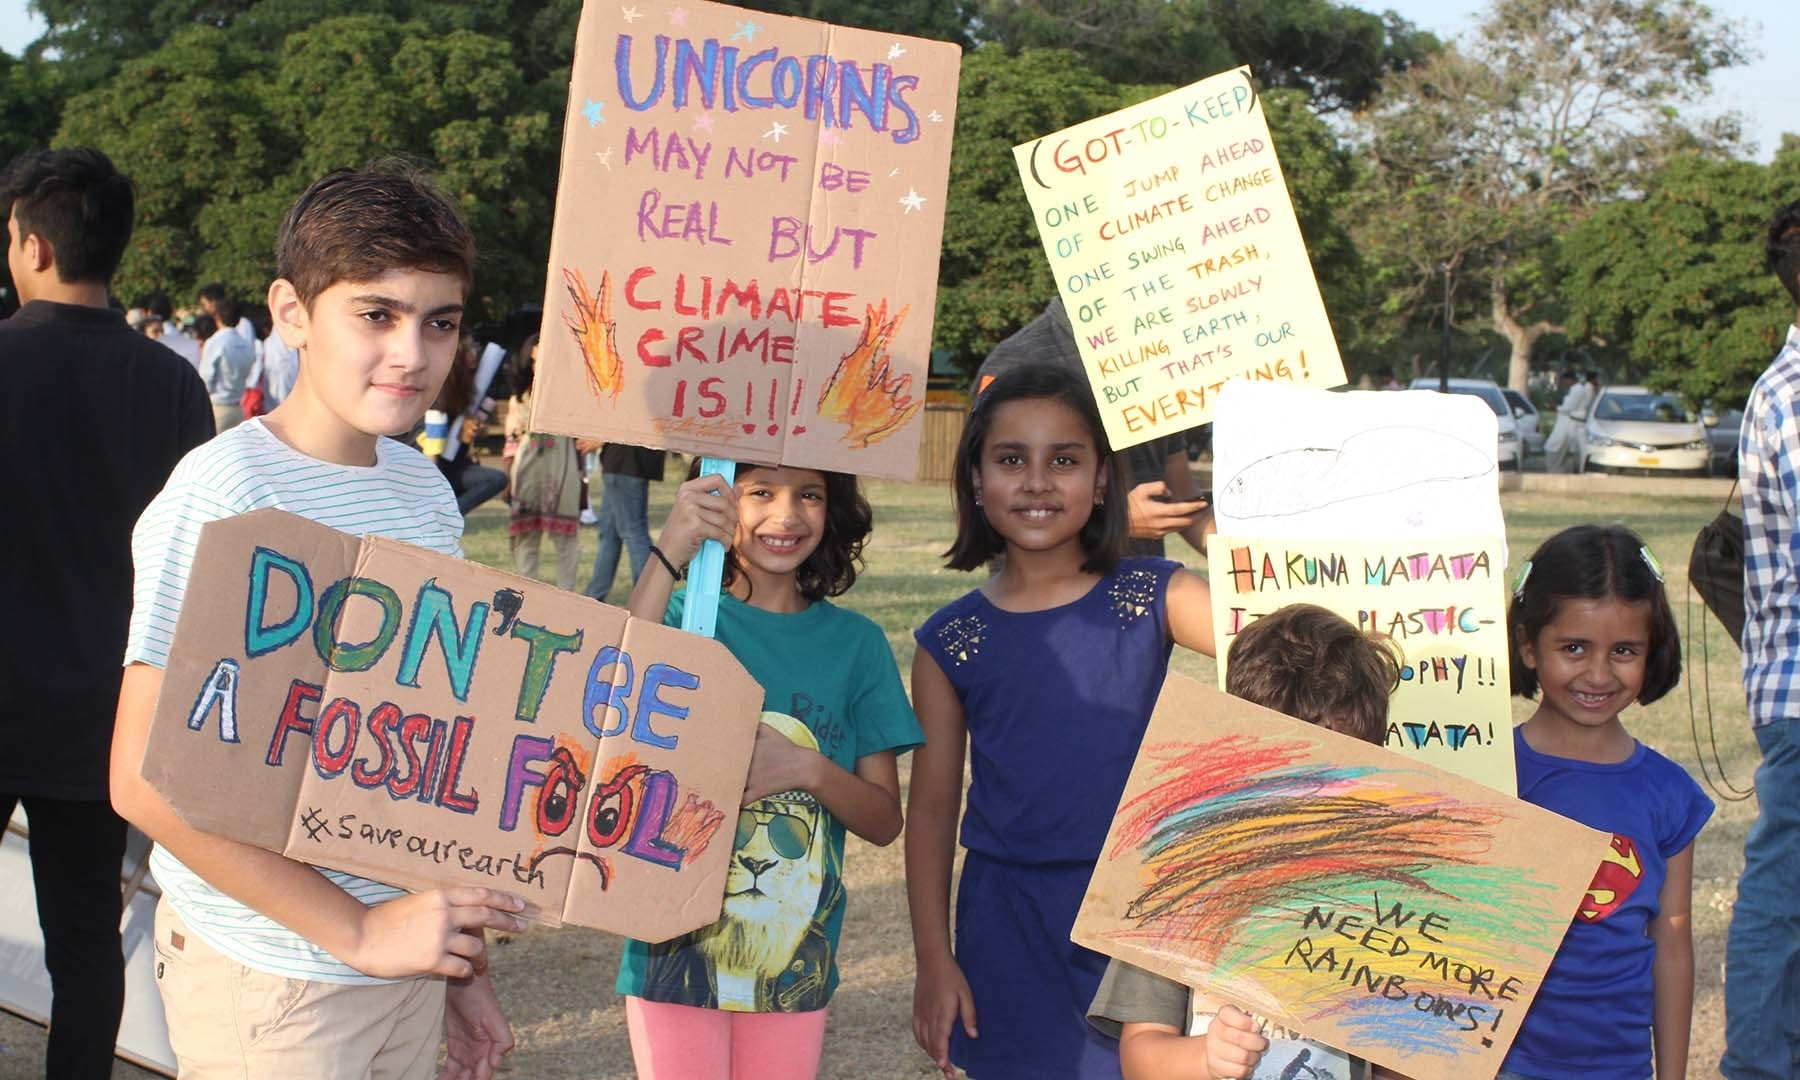 Children hold up placards at the climate march. — Photo by Kamran Nafees